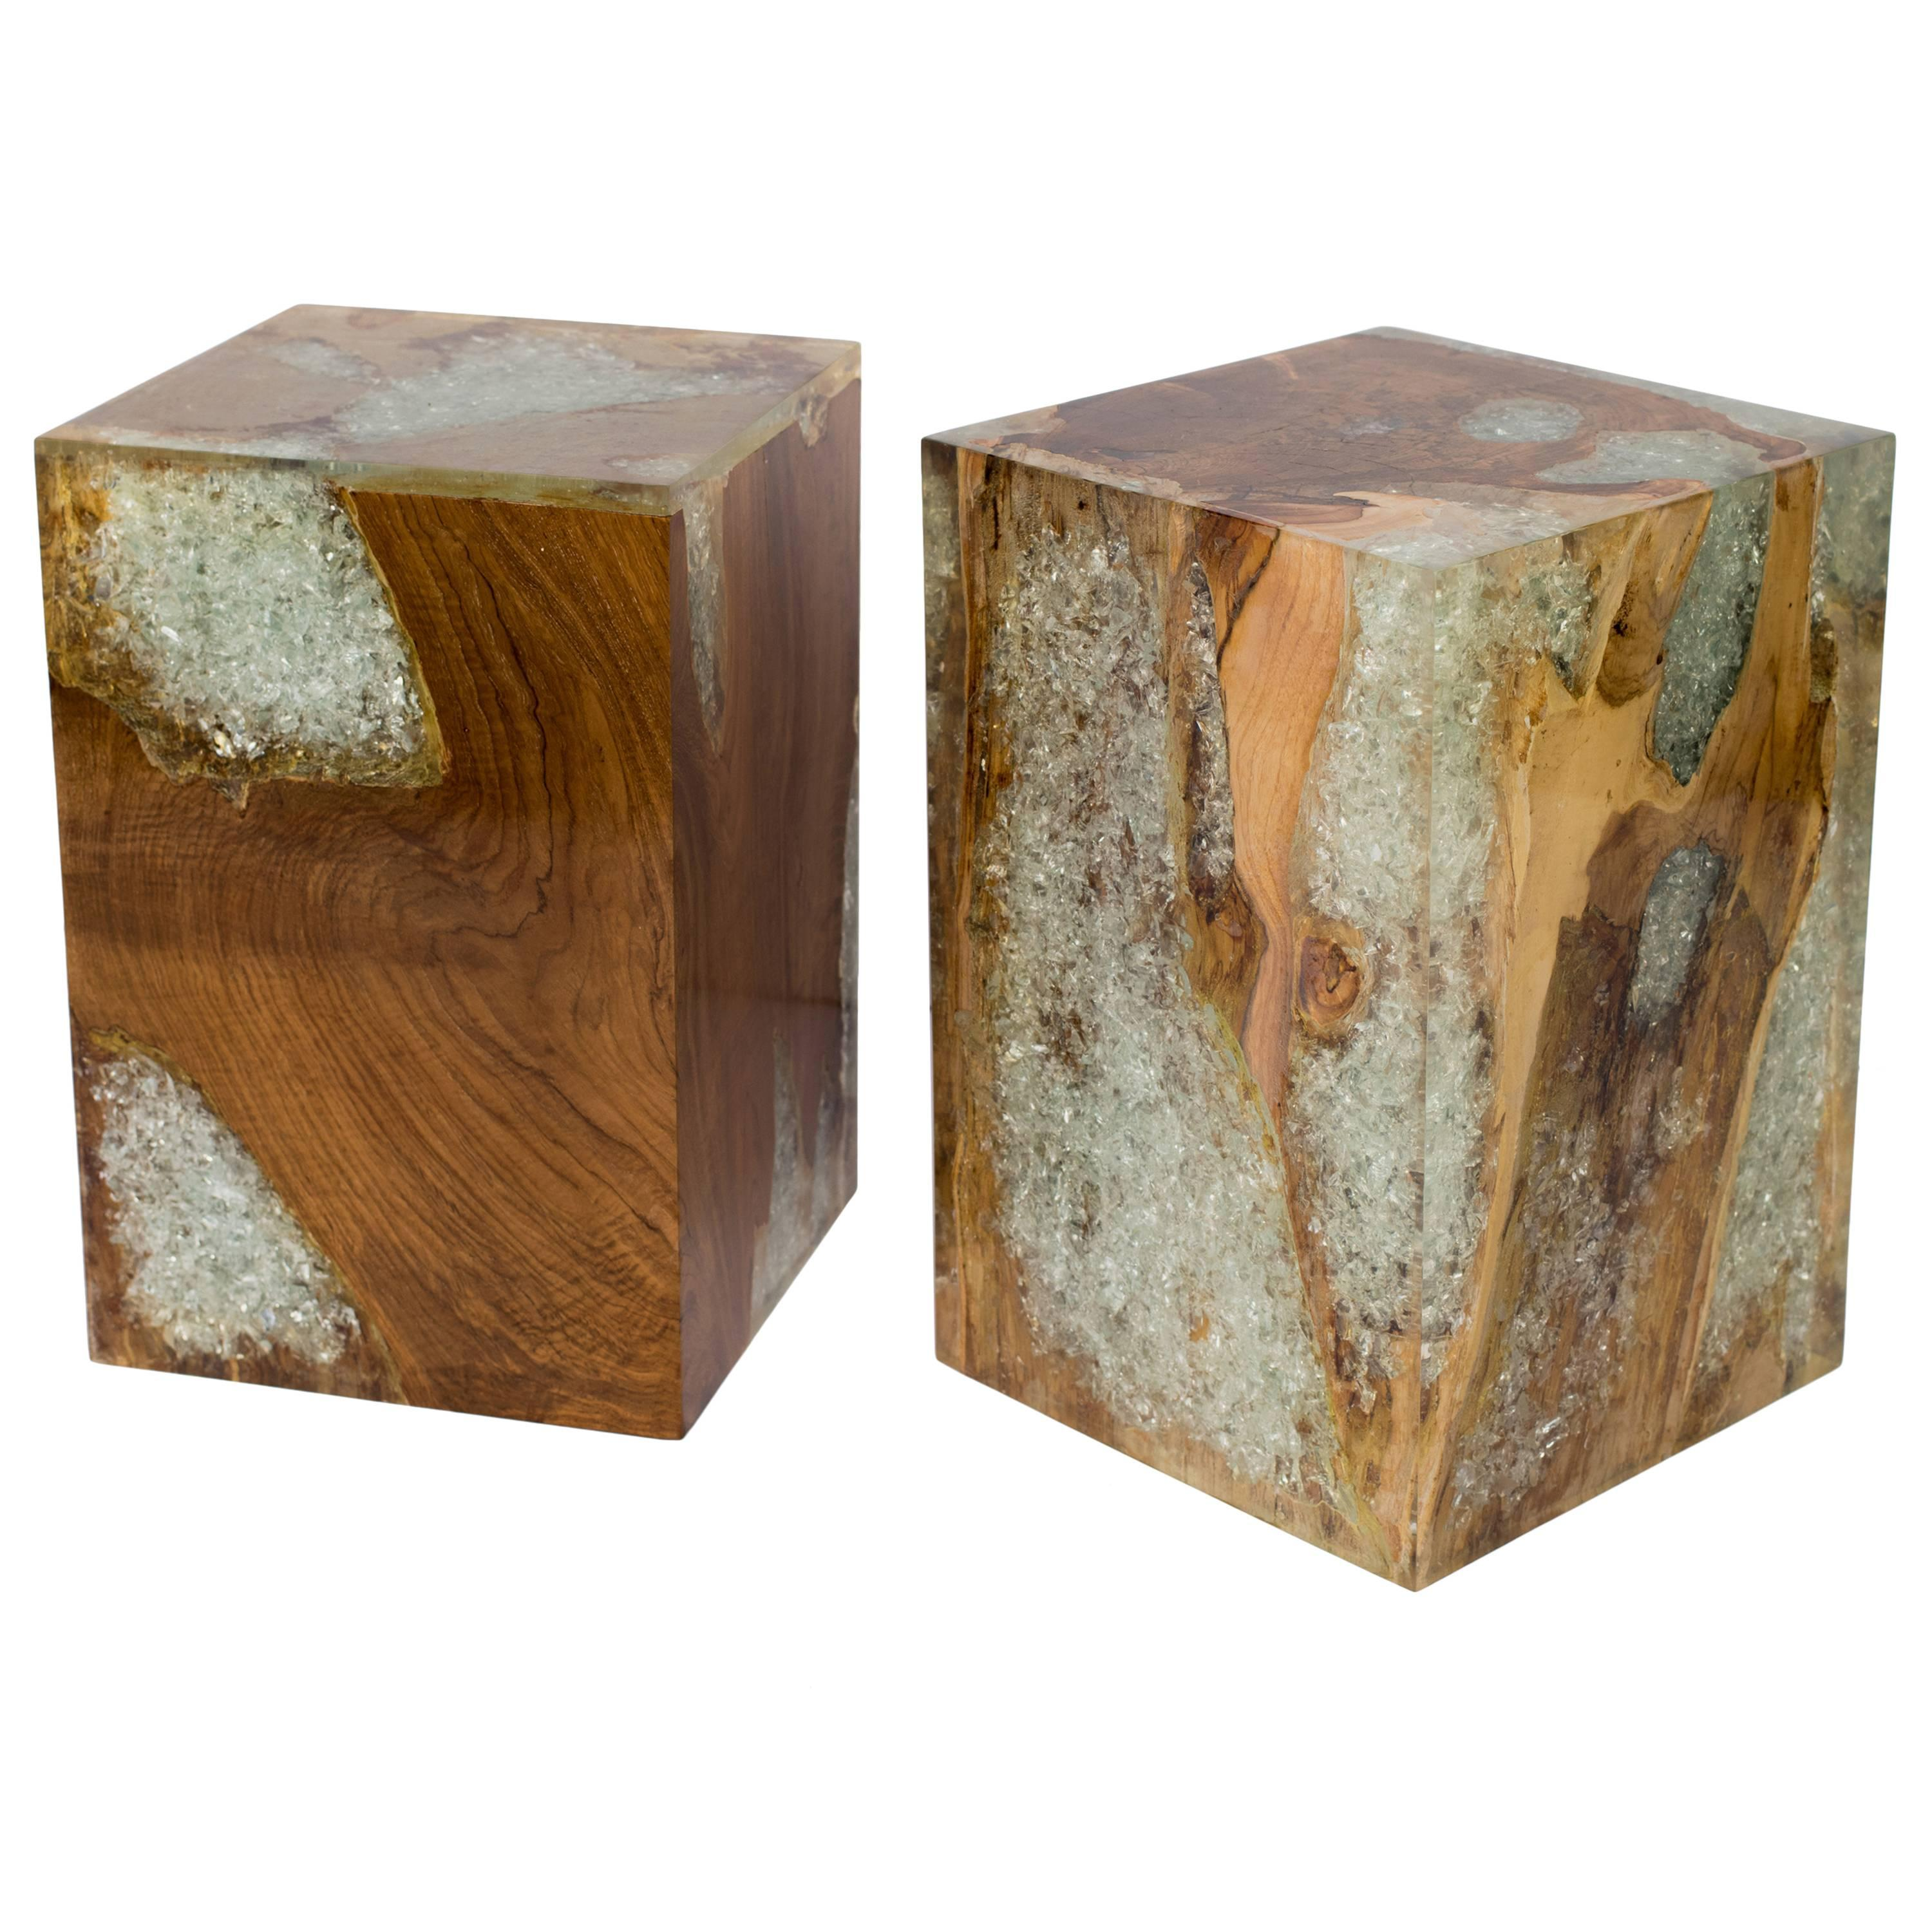 Organic Modern Teak Wood and Cracked Resin Side Table